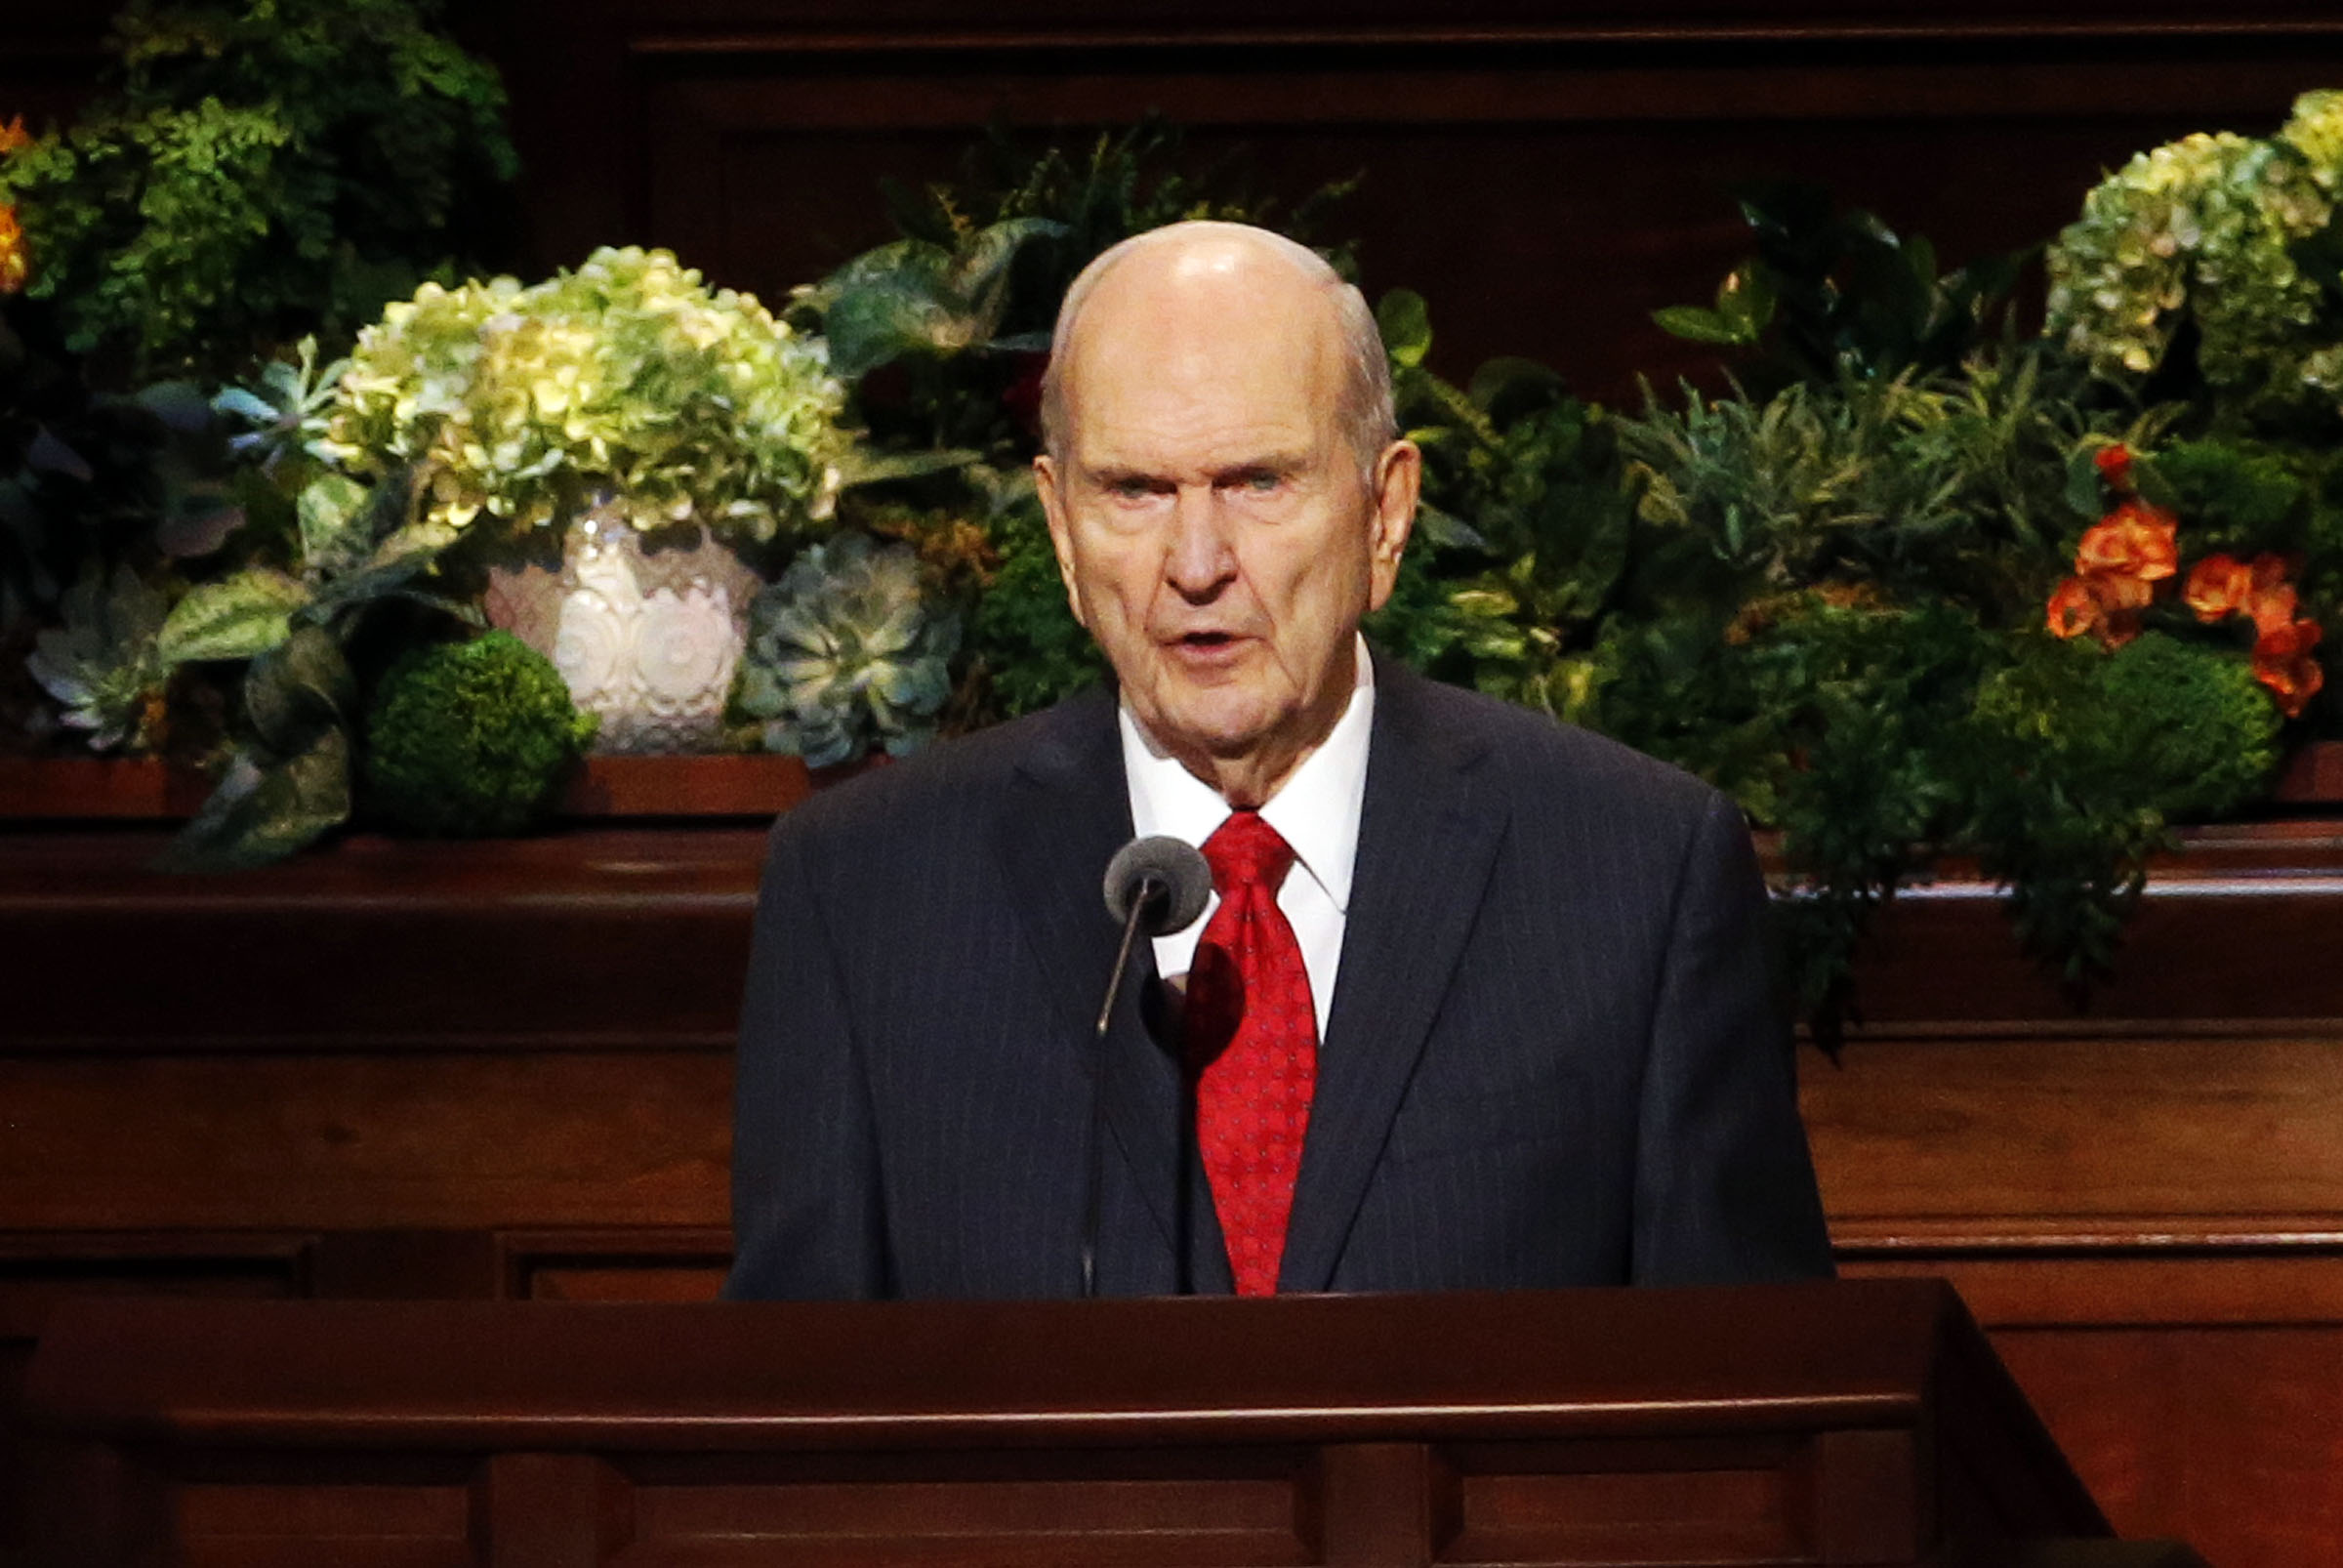 President Russell M. Nelson of The Church of Jesus Christ of Latter-day Saints speaks during the Priesthood session of general conference in Salt Lake City on Saturday, April 6, 2019.